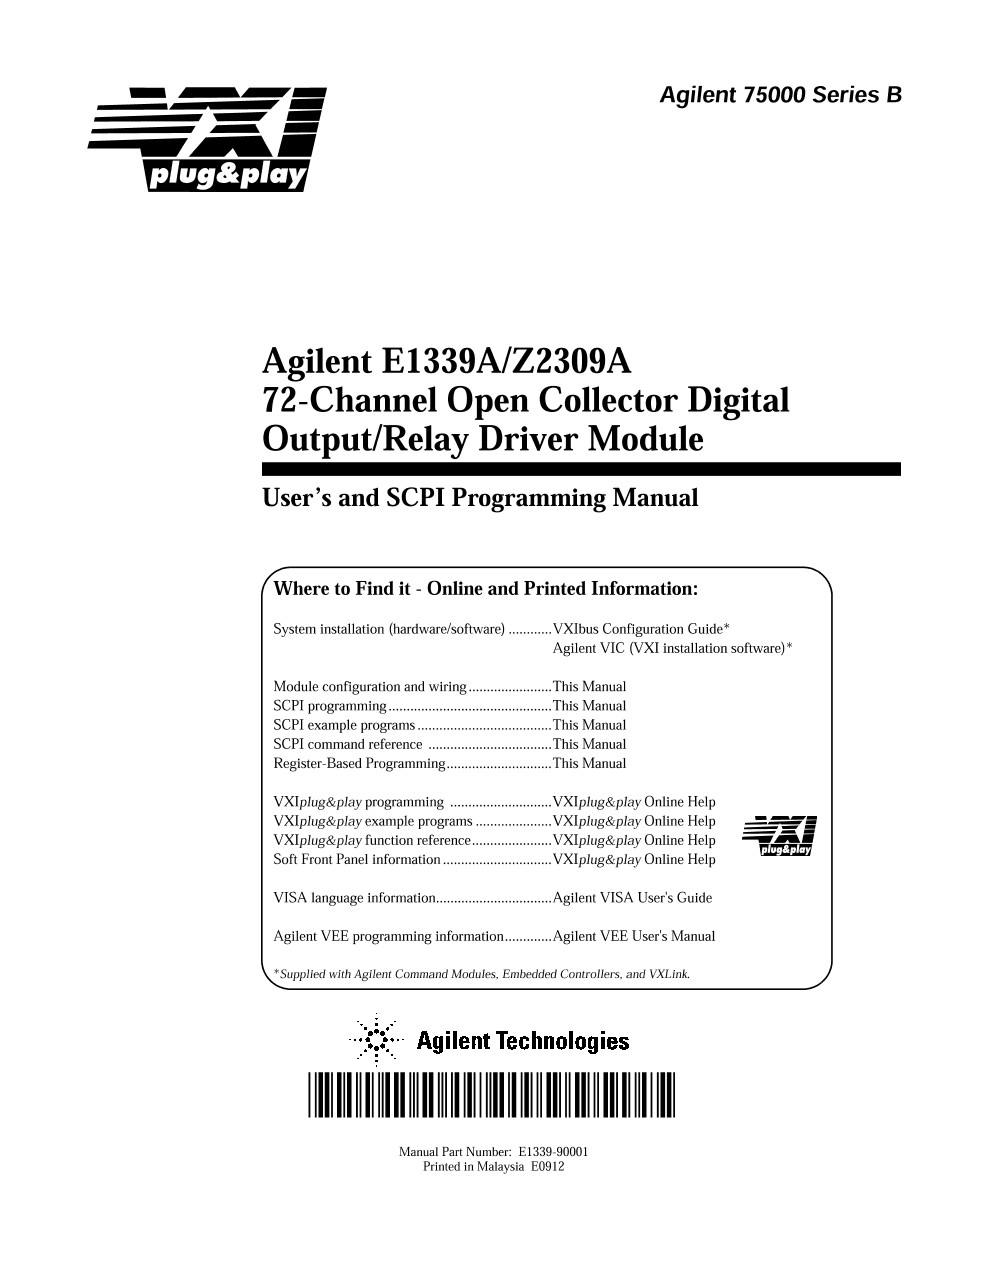 E1339A/Z2309A 72-Channel Open Collector Digital Output/Relay ...